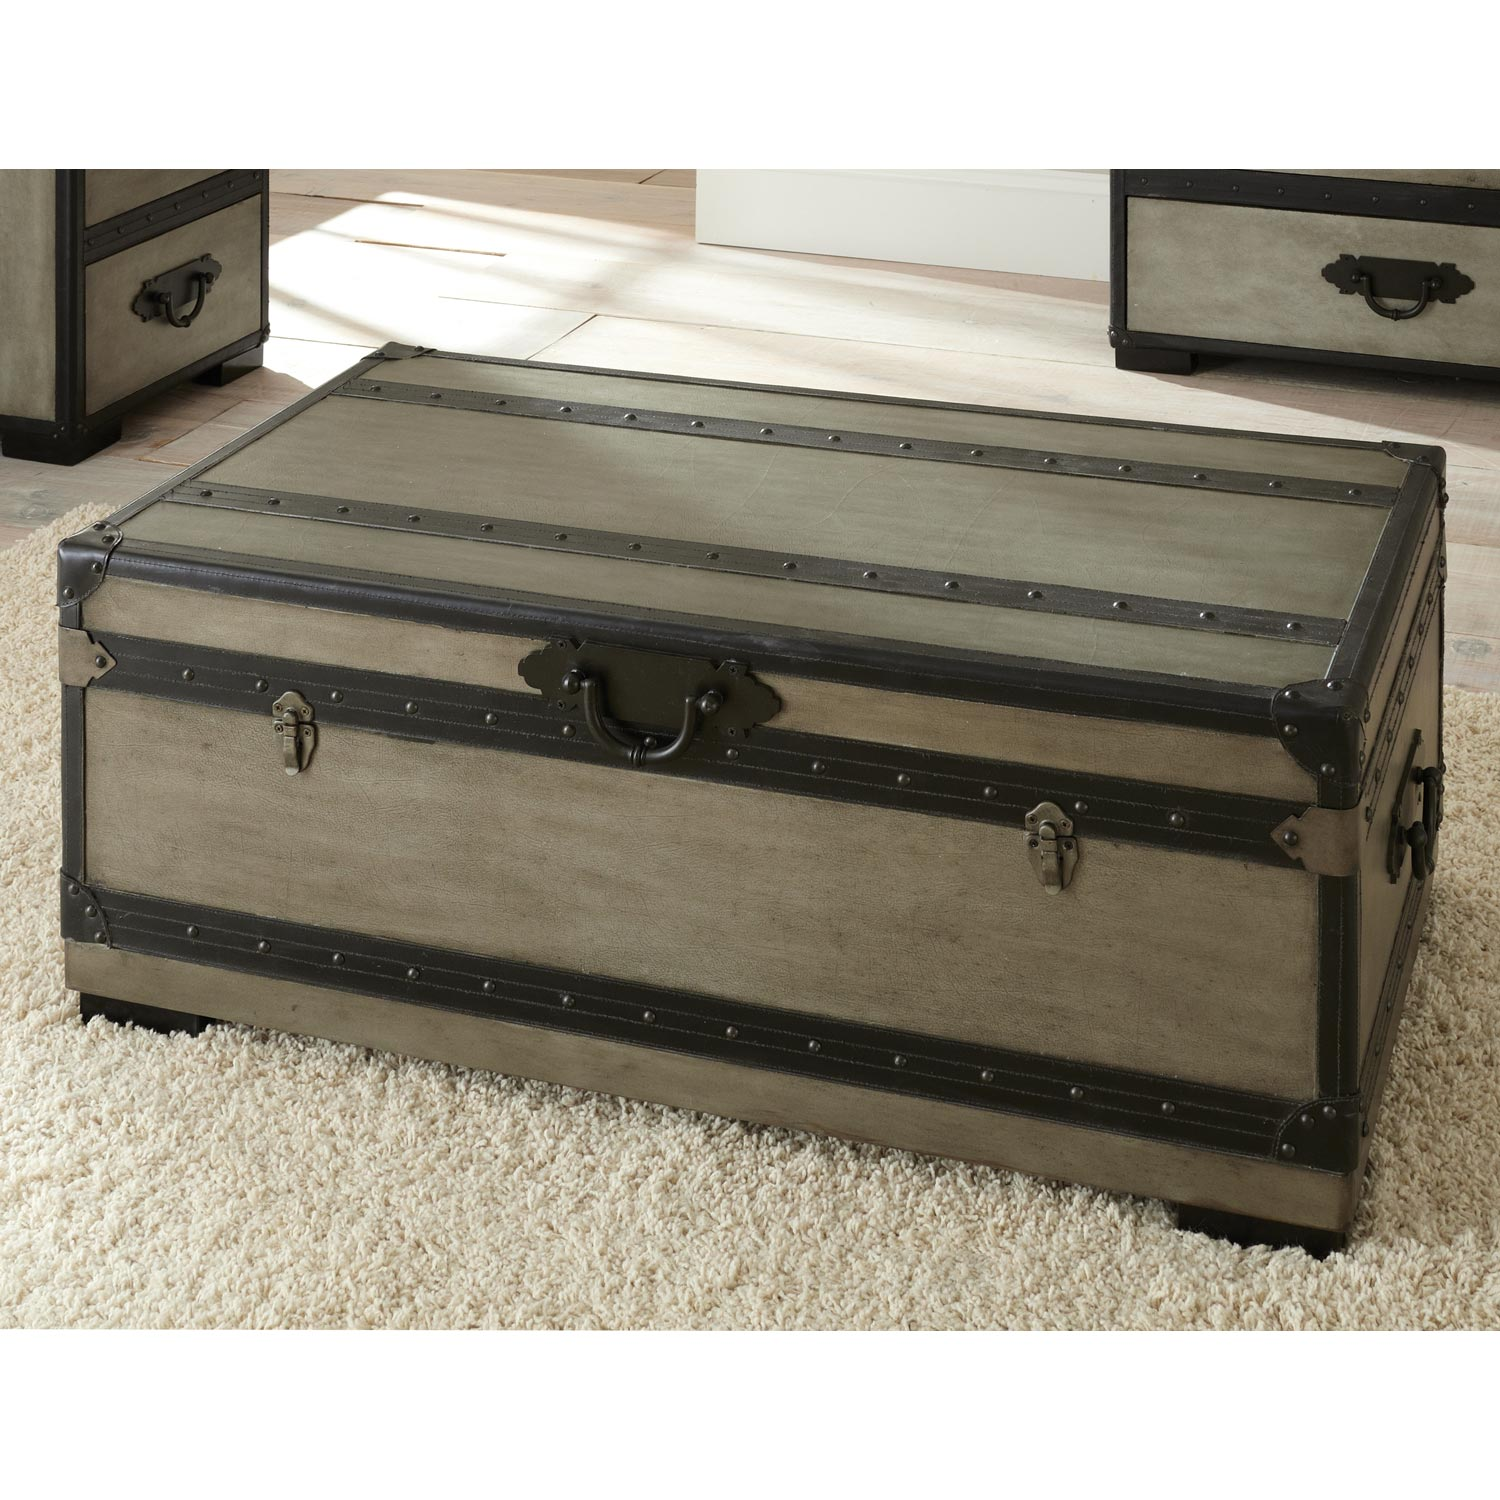 Rowan Storage Trunk / Coffee Table - Leather Accents, Gray - SSC-RW300C